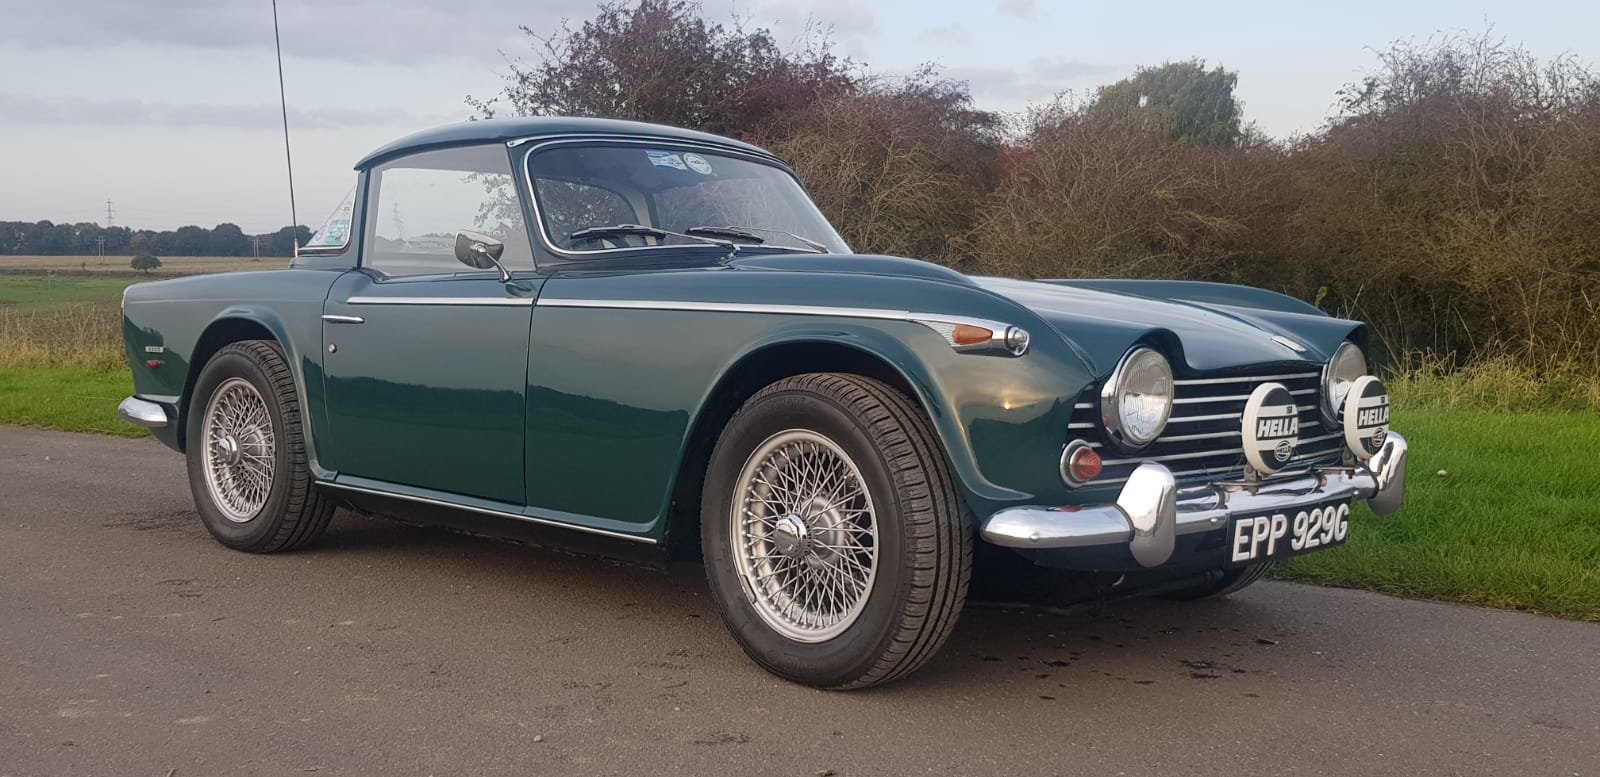 1968/G TRIUMPH TR5 PI WITH SURREY TOP MANUAL O/D GREEN For Sale (picture 1 of 6)